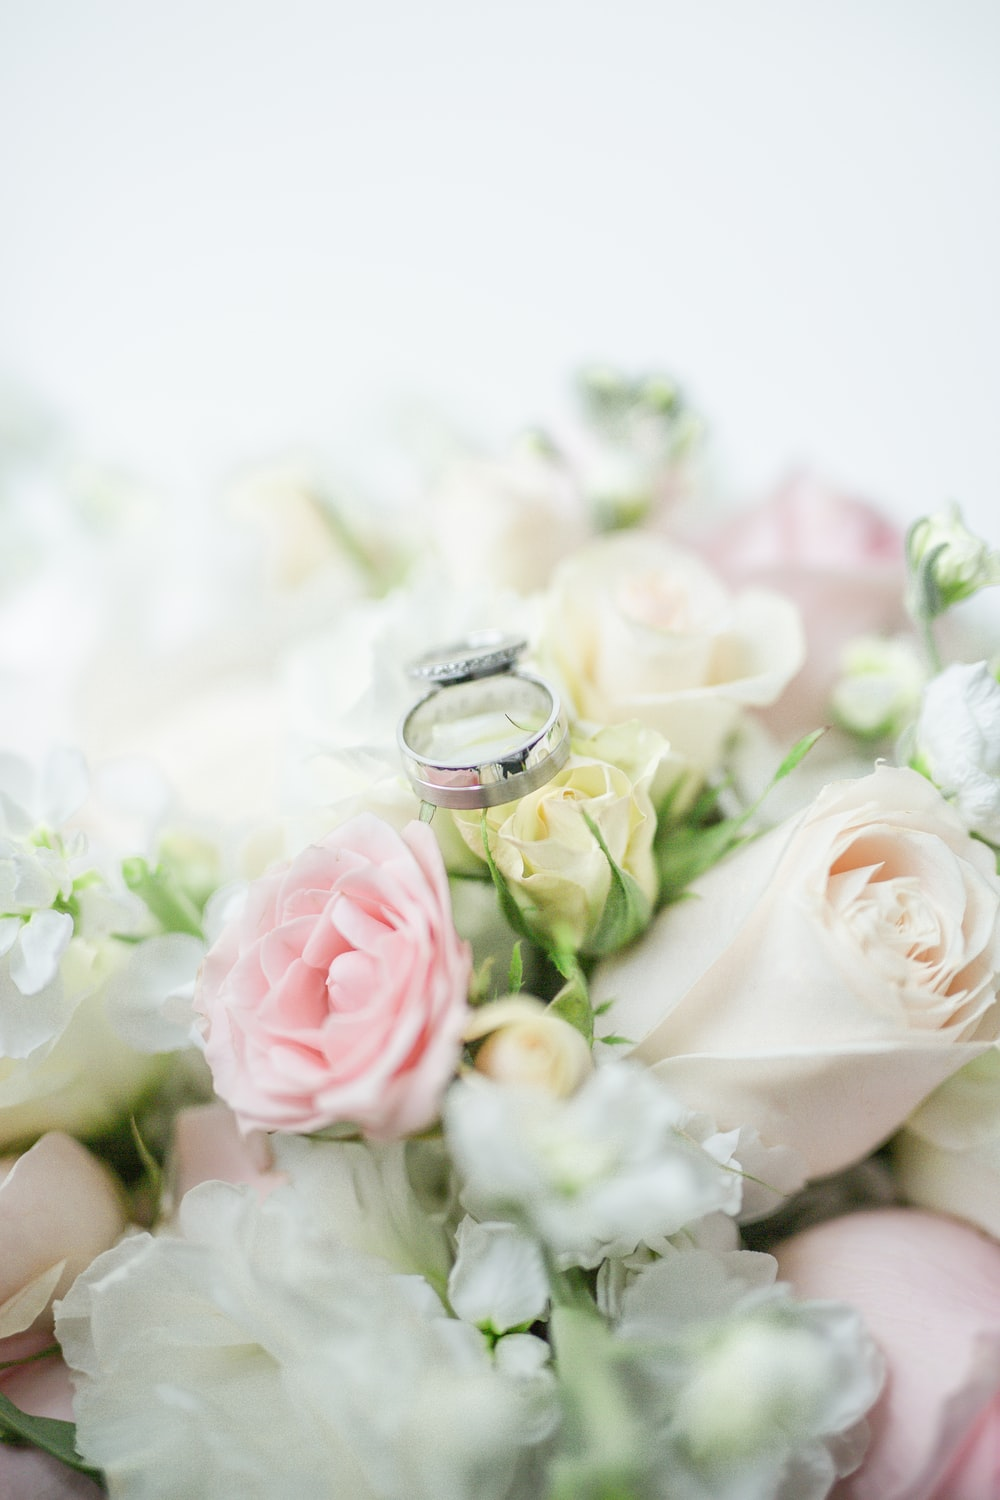 silver ring on white and pink roses bouquet